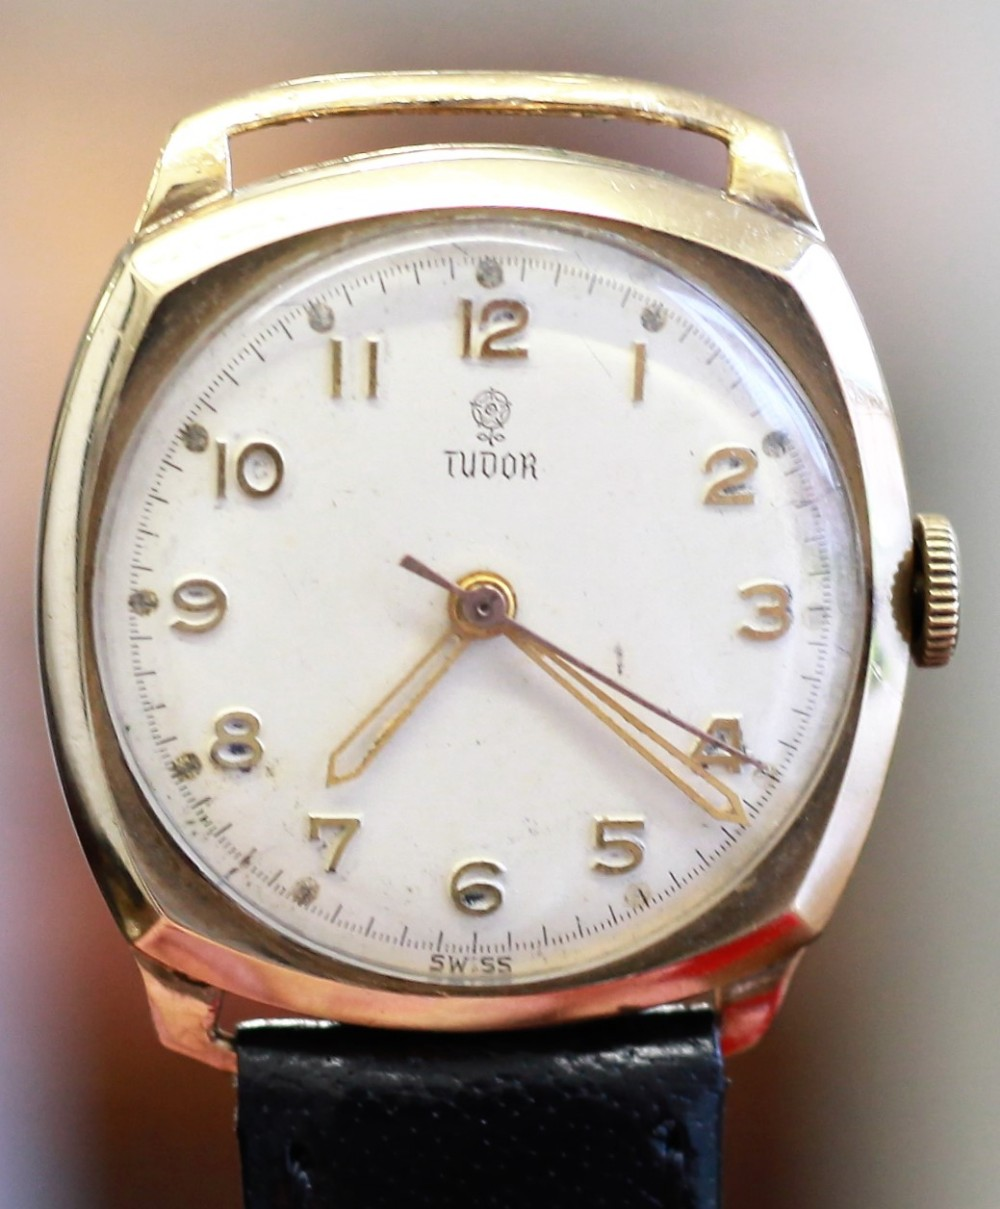 1954 gold rolex tudor with sweep second